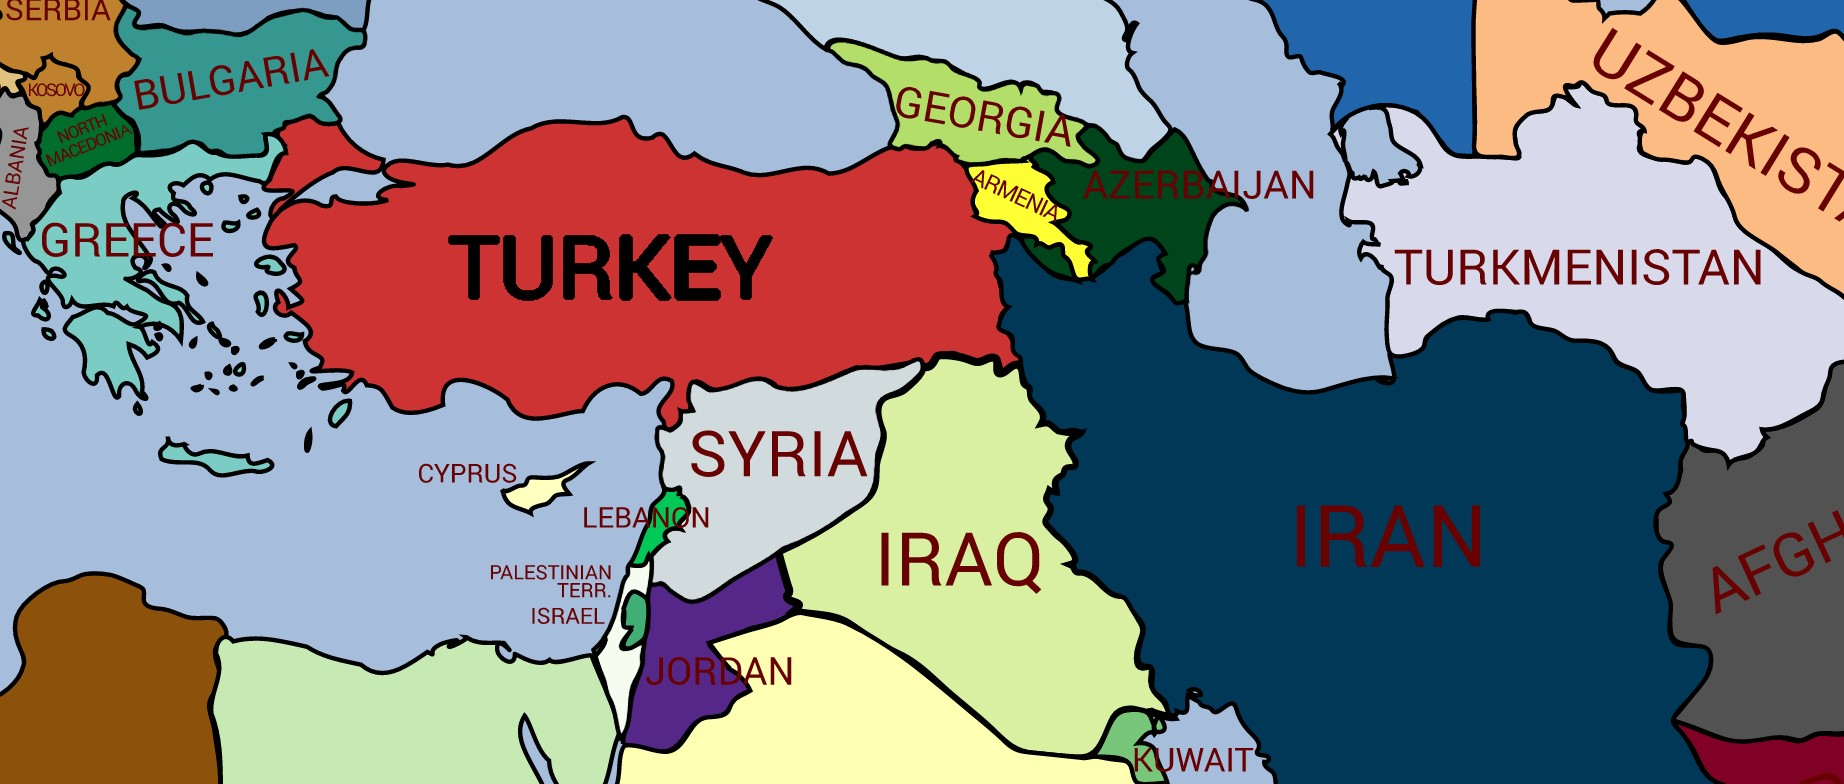 File:Turkey map 1.jpg - Wikimedia Commons